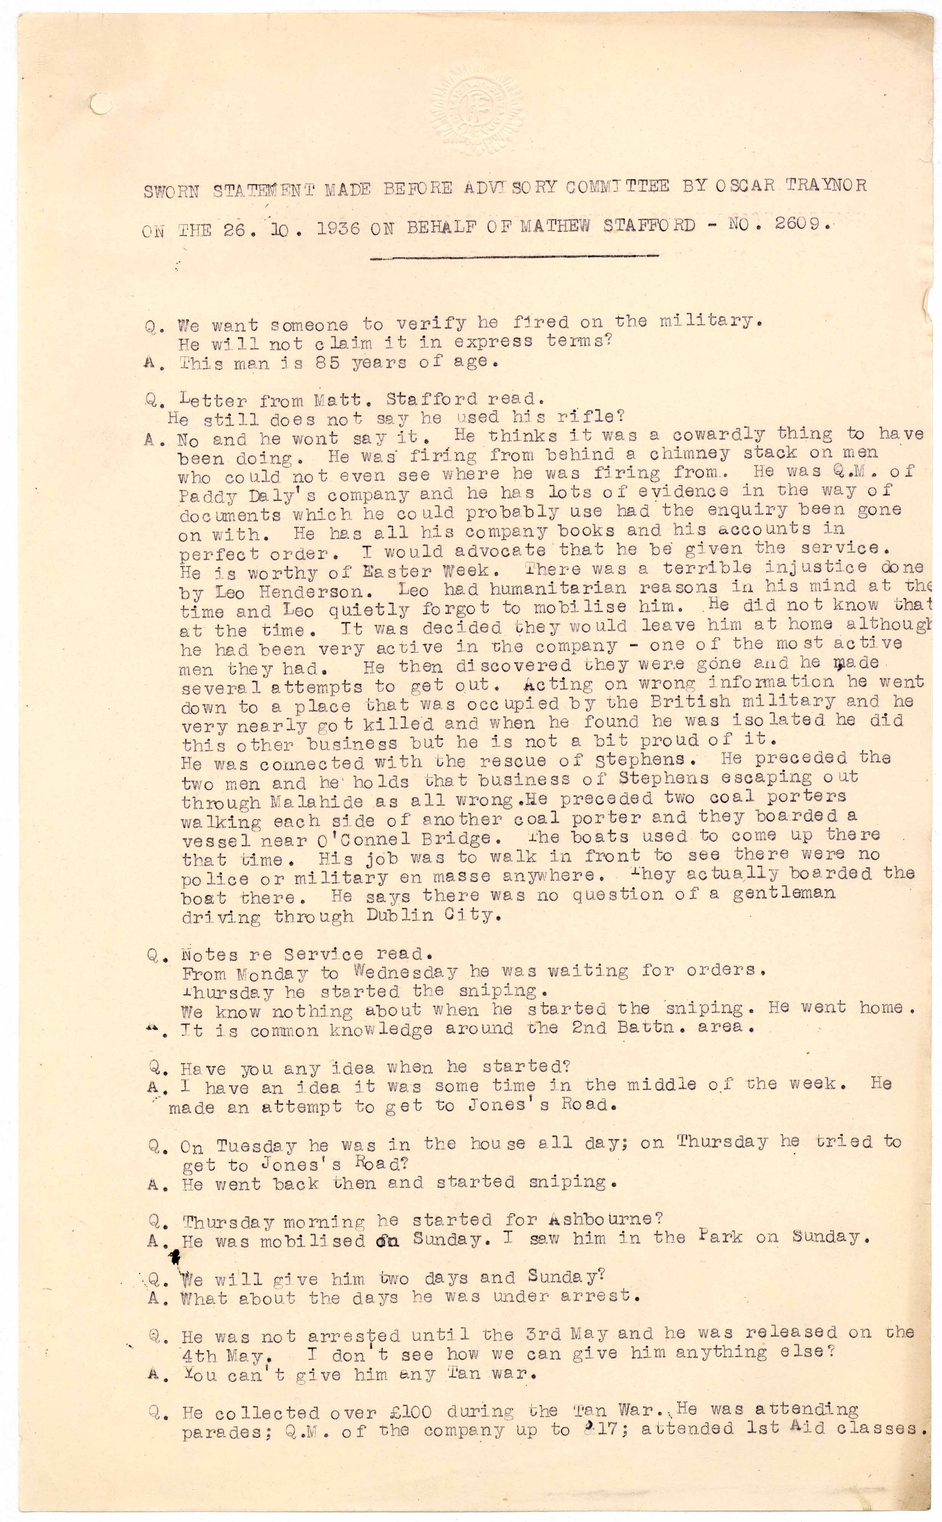 Extract from sworn statement made by Oscar Traynor TD, former Officer Commanding Dublin Brigade IRA, before the Advisory Committee, Military Service Pensions Act, in support of Mathew Stafford's application for a military service pension under 1934 act